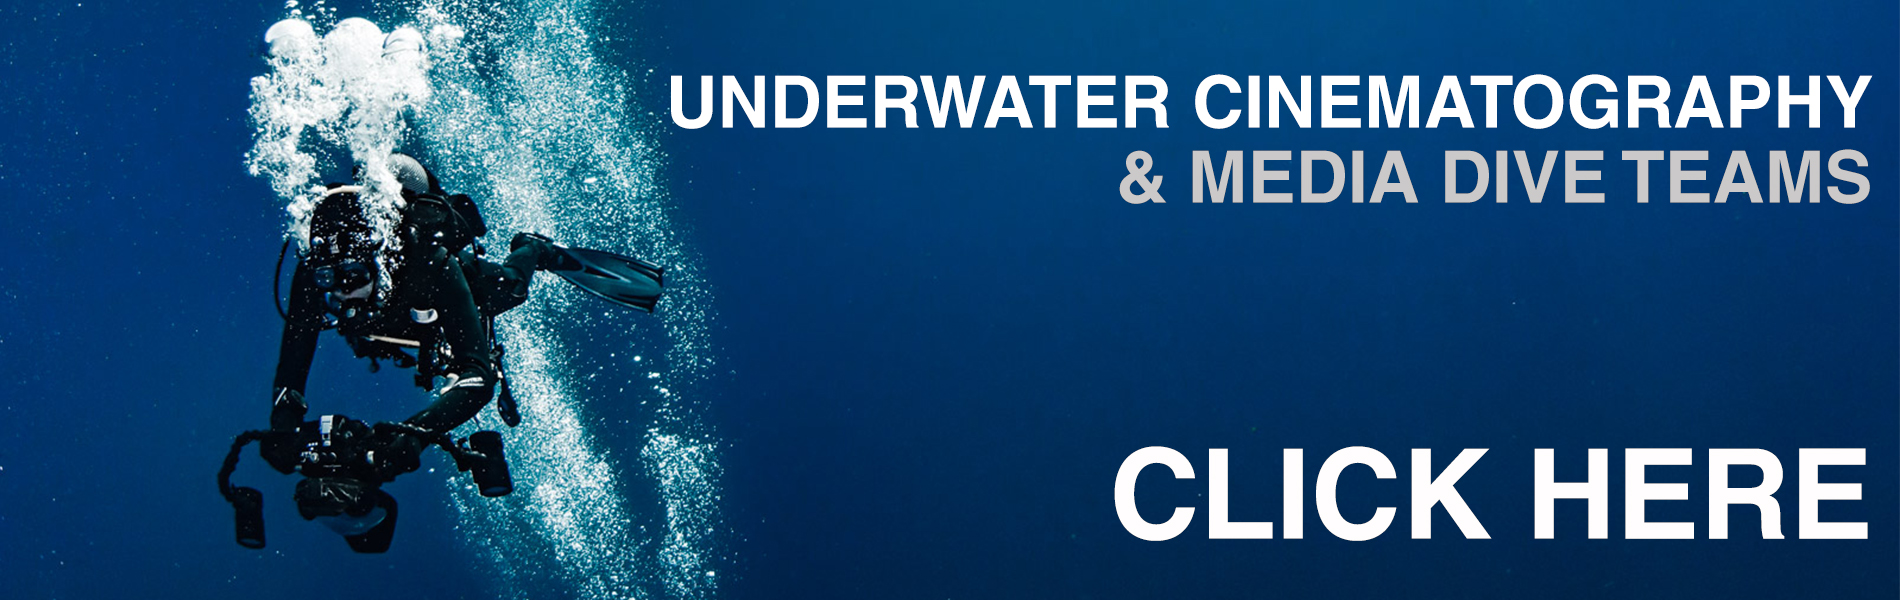 underwater-cinematography-slider